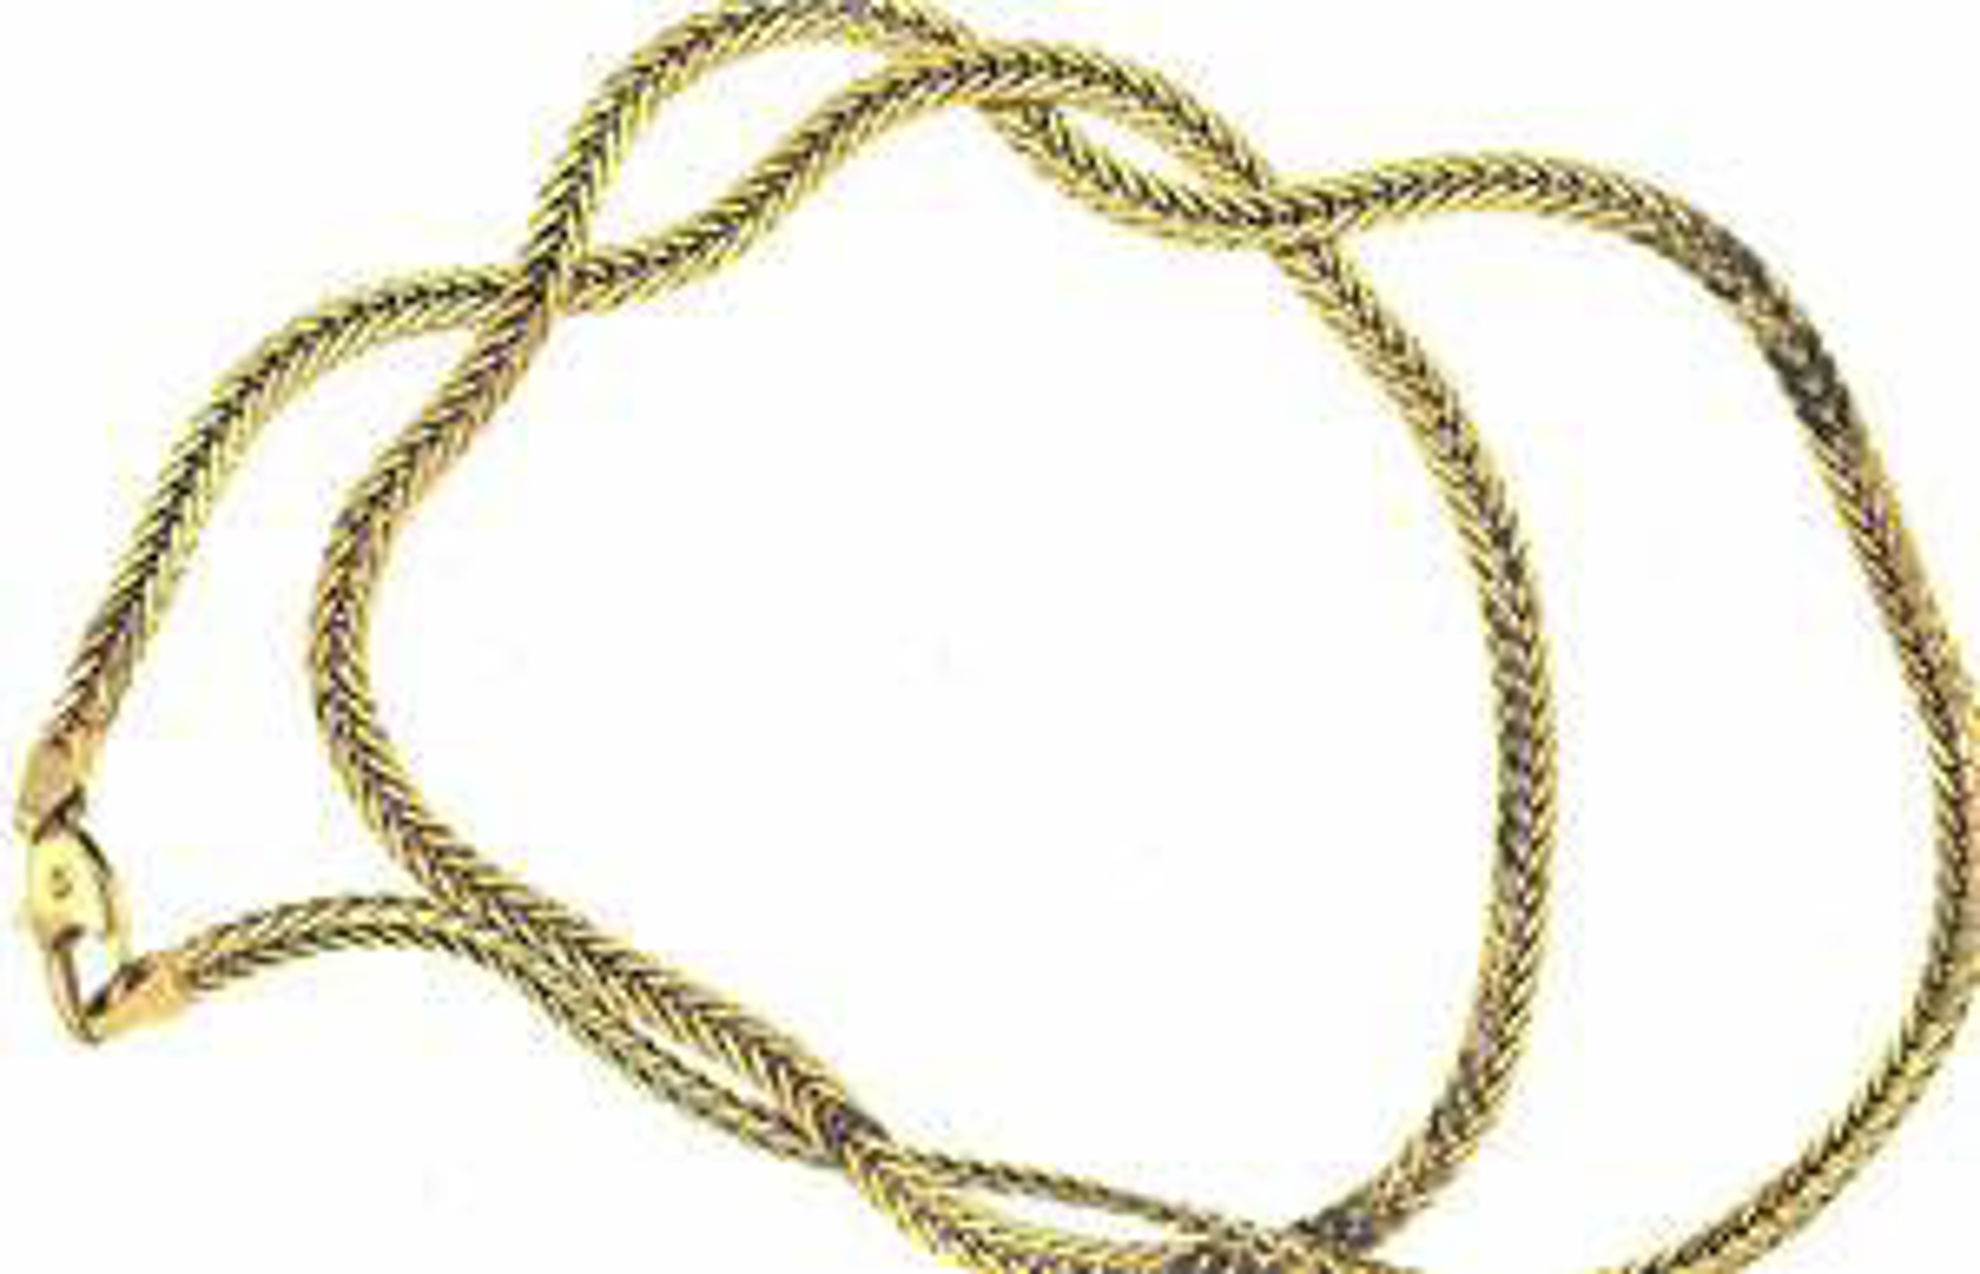 Picture of Chains 14kt-12.2 DWT, 19.0 Grams